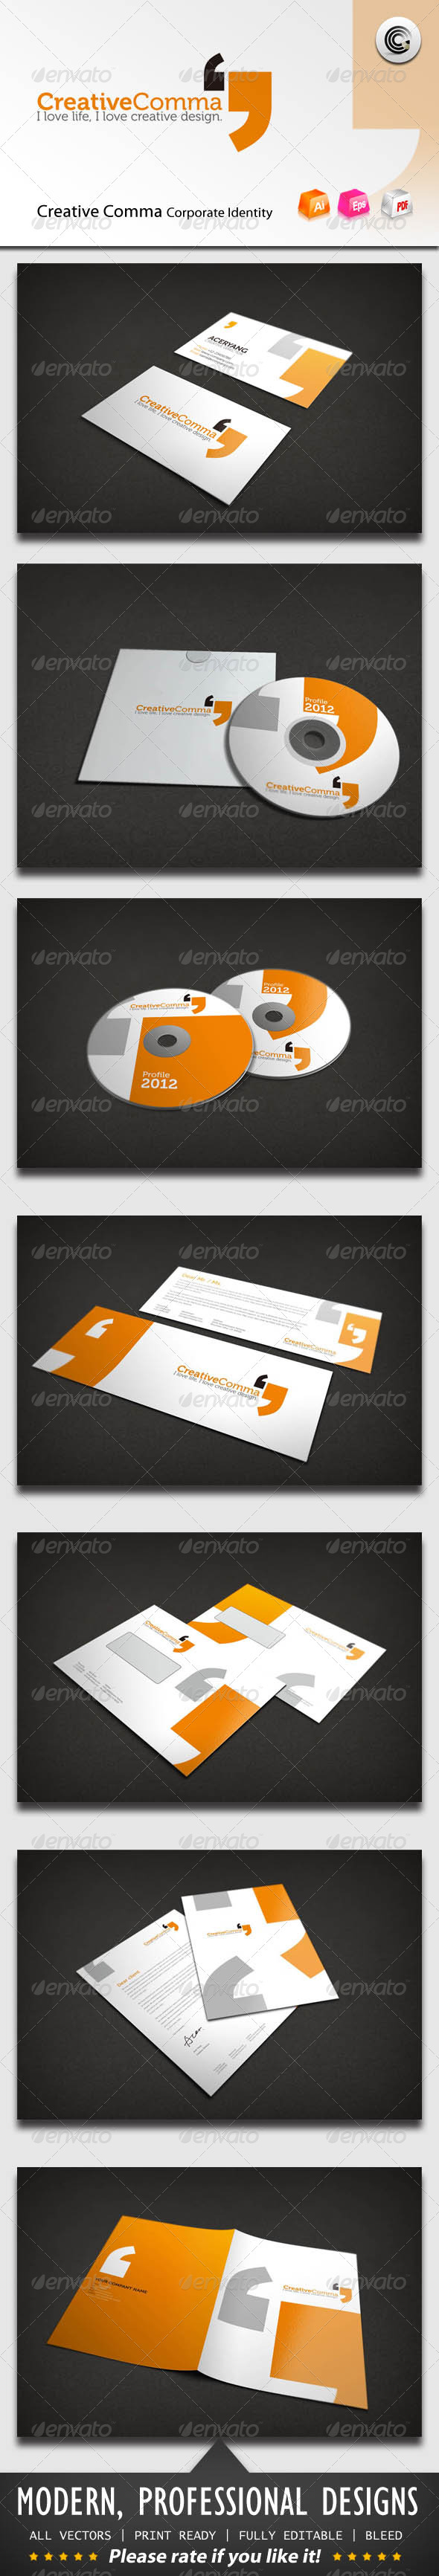 Graphic River Creative Comma Corporate Identity Print Templates -  Stationery 913143